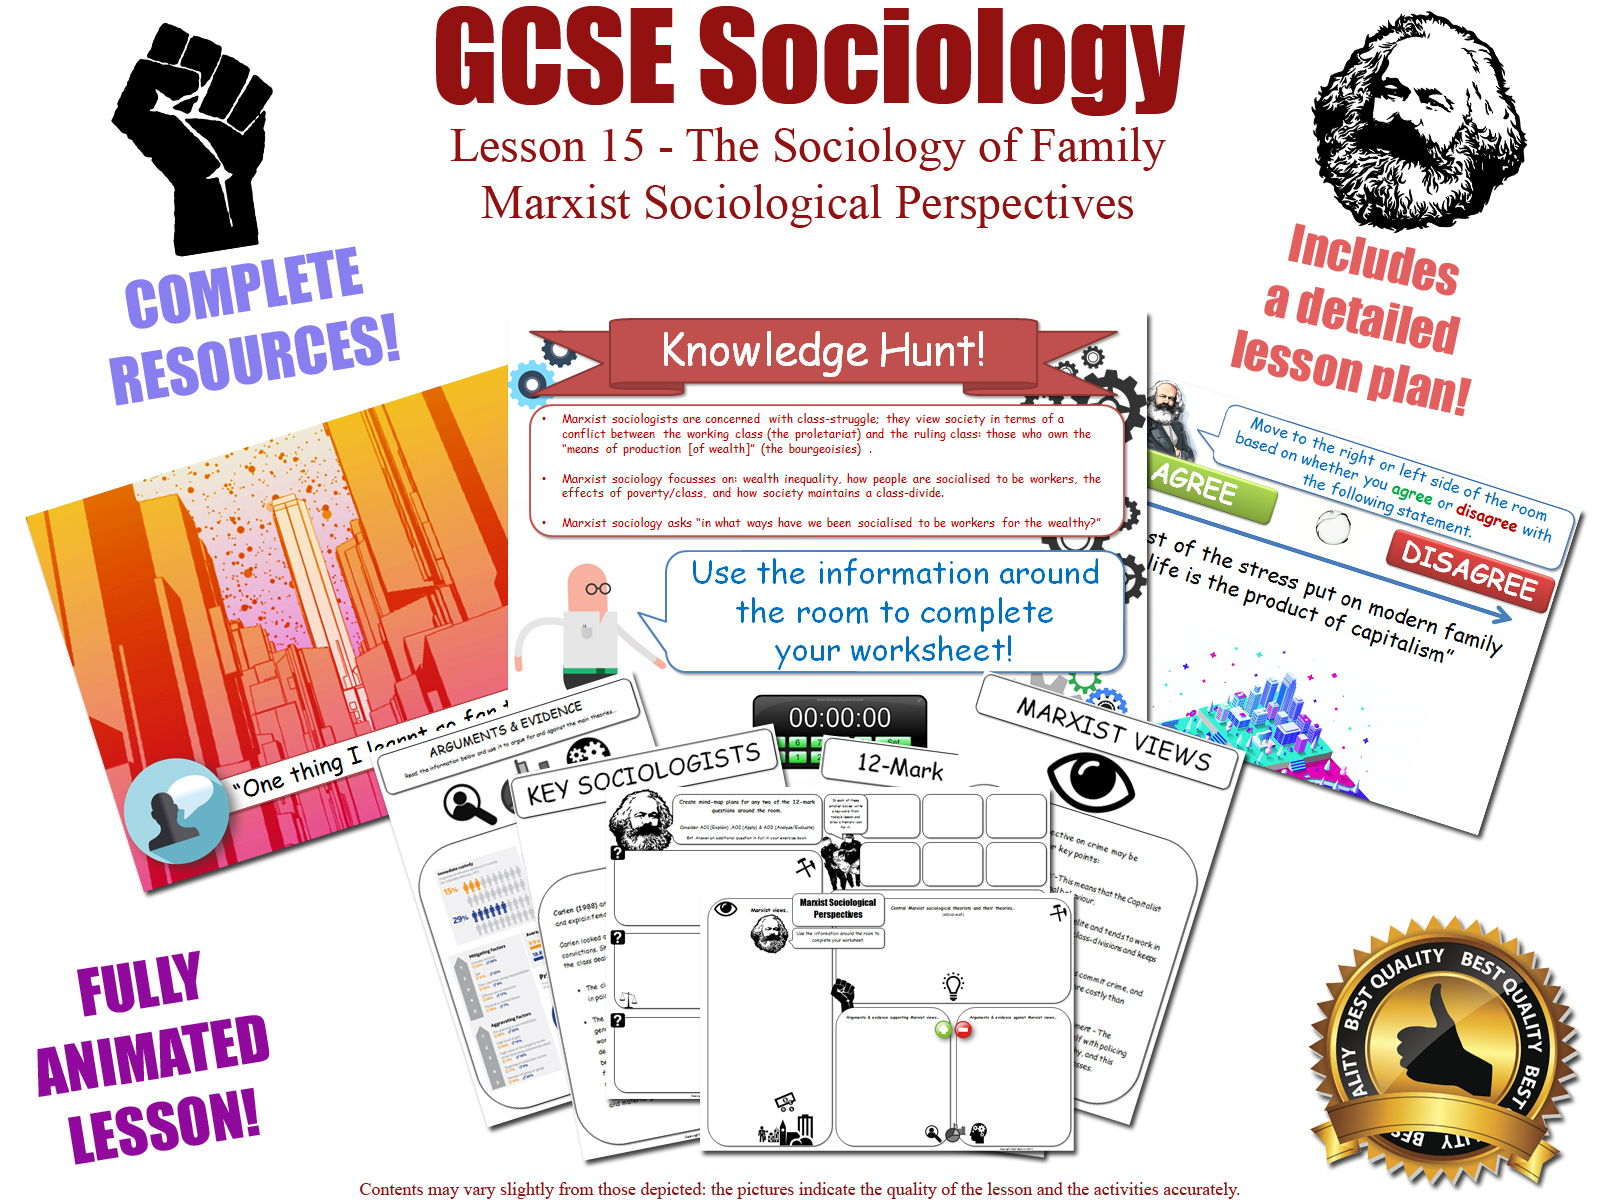 GCSE Sociology - Marxist Perspectives Bundle (AQA) 4 Complete lessons